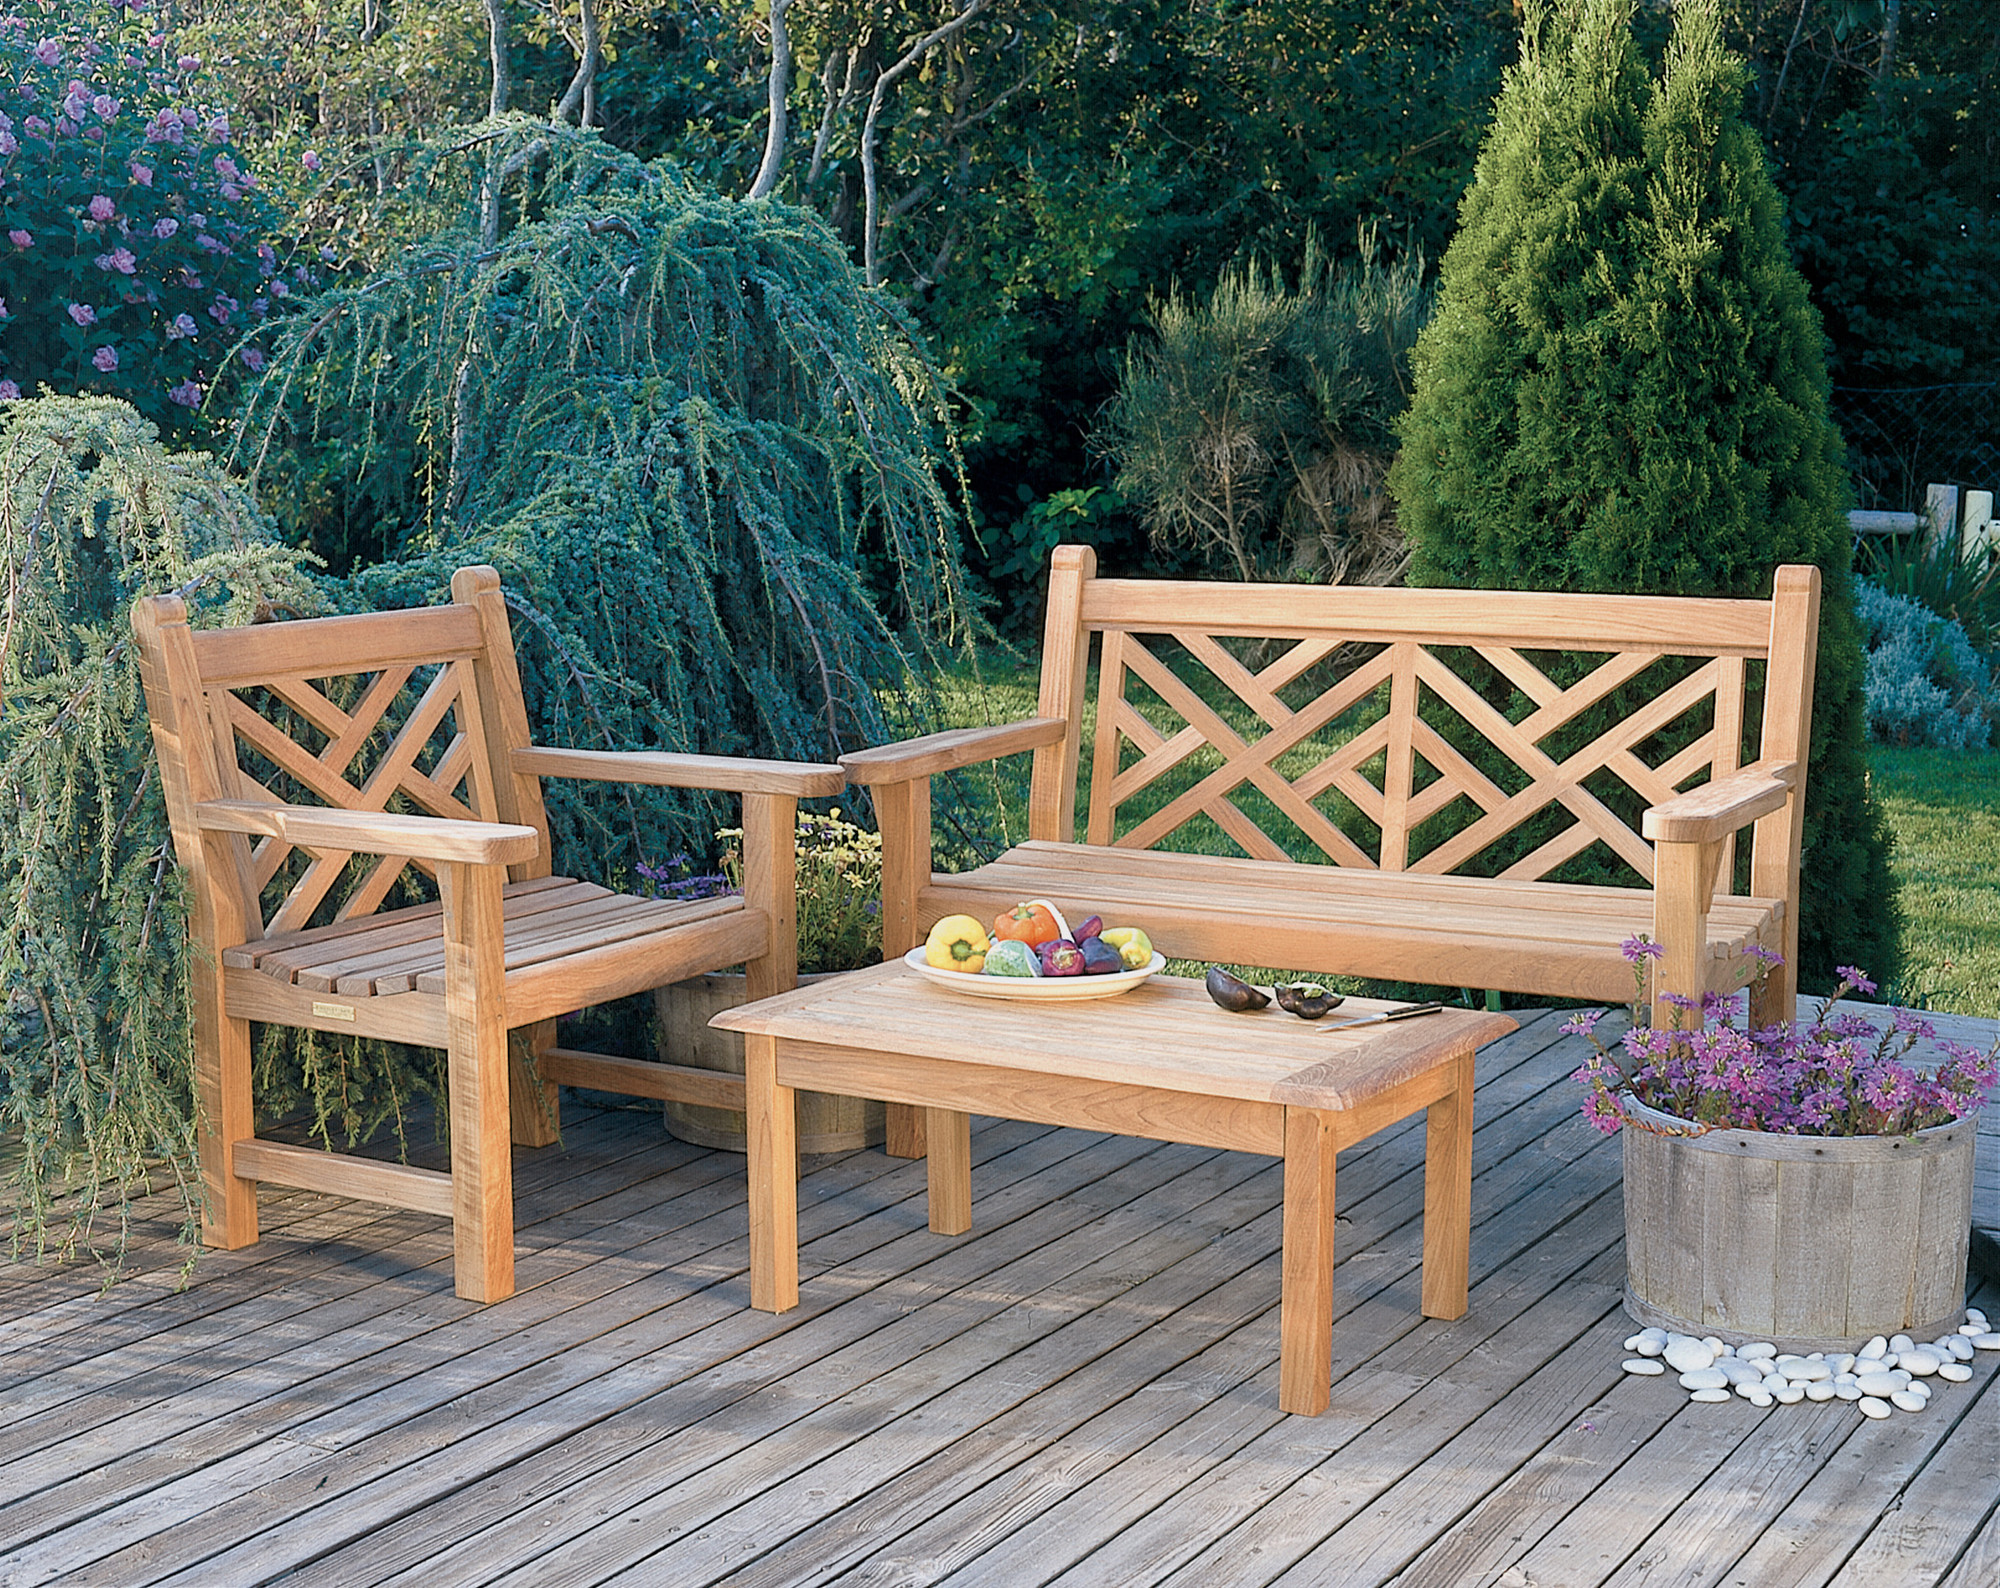 Kingsley-Bate Chippendale 4 Piece Teak Bench and Garden Chair Ensemble